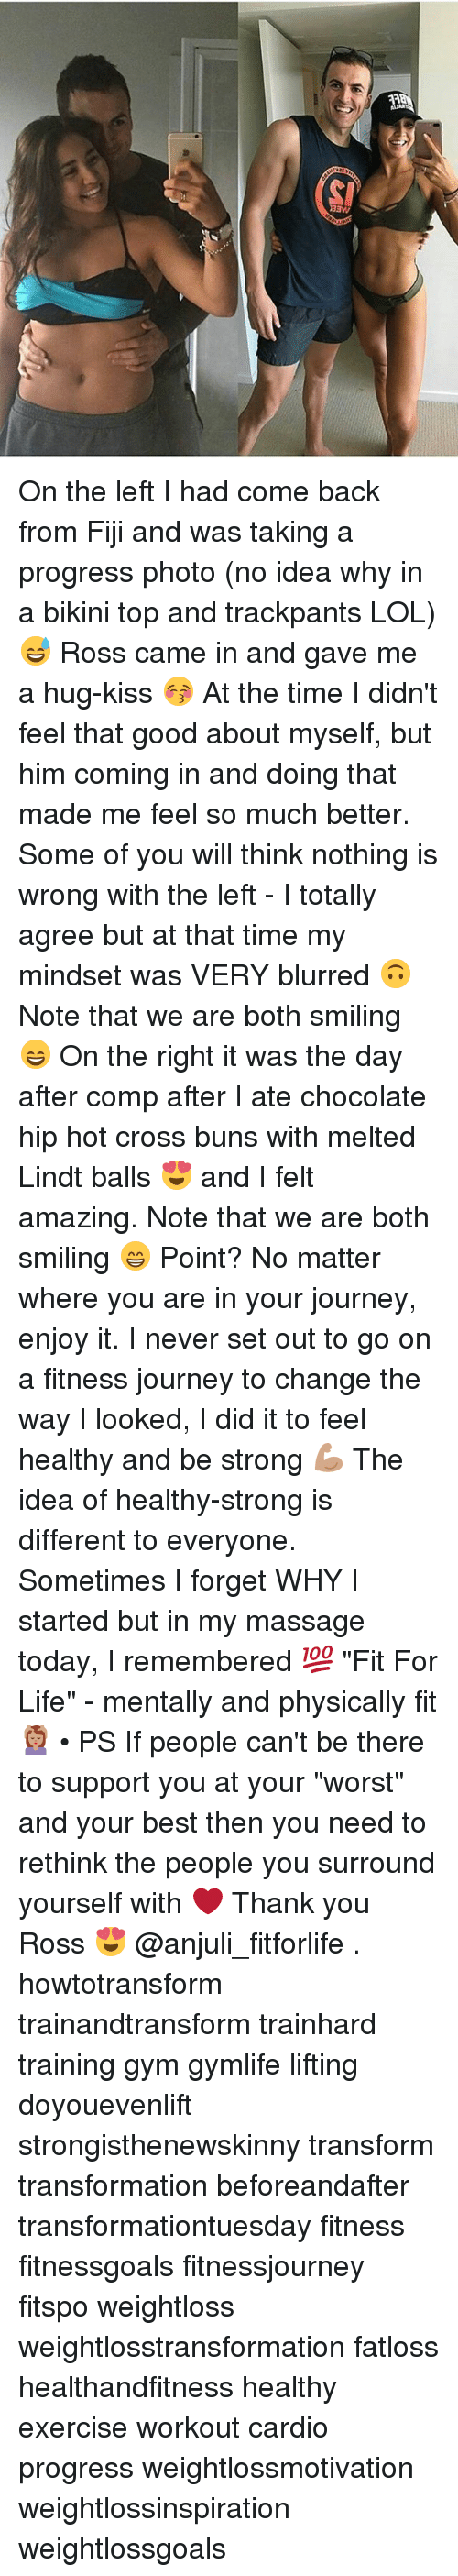 """Gym, Journey, and Life: MEEL  en On the left I had come back from Fiji and was taking a progress photo (no idea why in a bikini top and trackpants LOL) 😅 Ross came in and gave me a hug-kiss 😚 At the time I didn't feel that good about myself, but him coming in and doing that made me feel so much better. Some of you will think nothing is wrong with the left - I totally agree but at that time my mindset was VERY blurred 🙃 Note that we are both smiling 😄 On the right it was the day after comp after I ate chocolate hip hot cross buns with melted Lindt balls 😍 and I felt amazing. Note that we are both smiling 😁 Point? No matter where you are in your journey, enjoy it. I never set out to go on a fitness journey to change the way I looked, I did it to feel healthy and be strong 💪🏽 The idea of healthy-strong is different to everyone. Sometimes I forget WHY I started but in my massage today, I remembered 💯 """"Fit For Life"""" - mentally and physically fit 💆🏽 • PS If people can't be there to support you at your """"worst"""" and your best then you need to rethink the people you surround yourself with ❤️ Thank you Ross 😍 @anjuli_fitforlife . howtotransform trainandtransform trainhard training gym gymlife lifting doyouevenlift strongisthenewskinny transform transformation beforeandafter transformationtuesday fitness fitnessgoals fitnessjourney fitspo weightloss weightlosstransformation fatloss healthandfitness healthy exercise workout cardio progress weightlossmotivation weightlossinspiration weightlossgoals"""